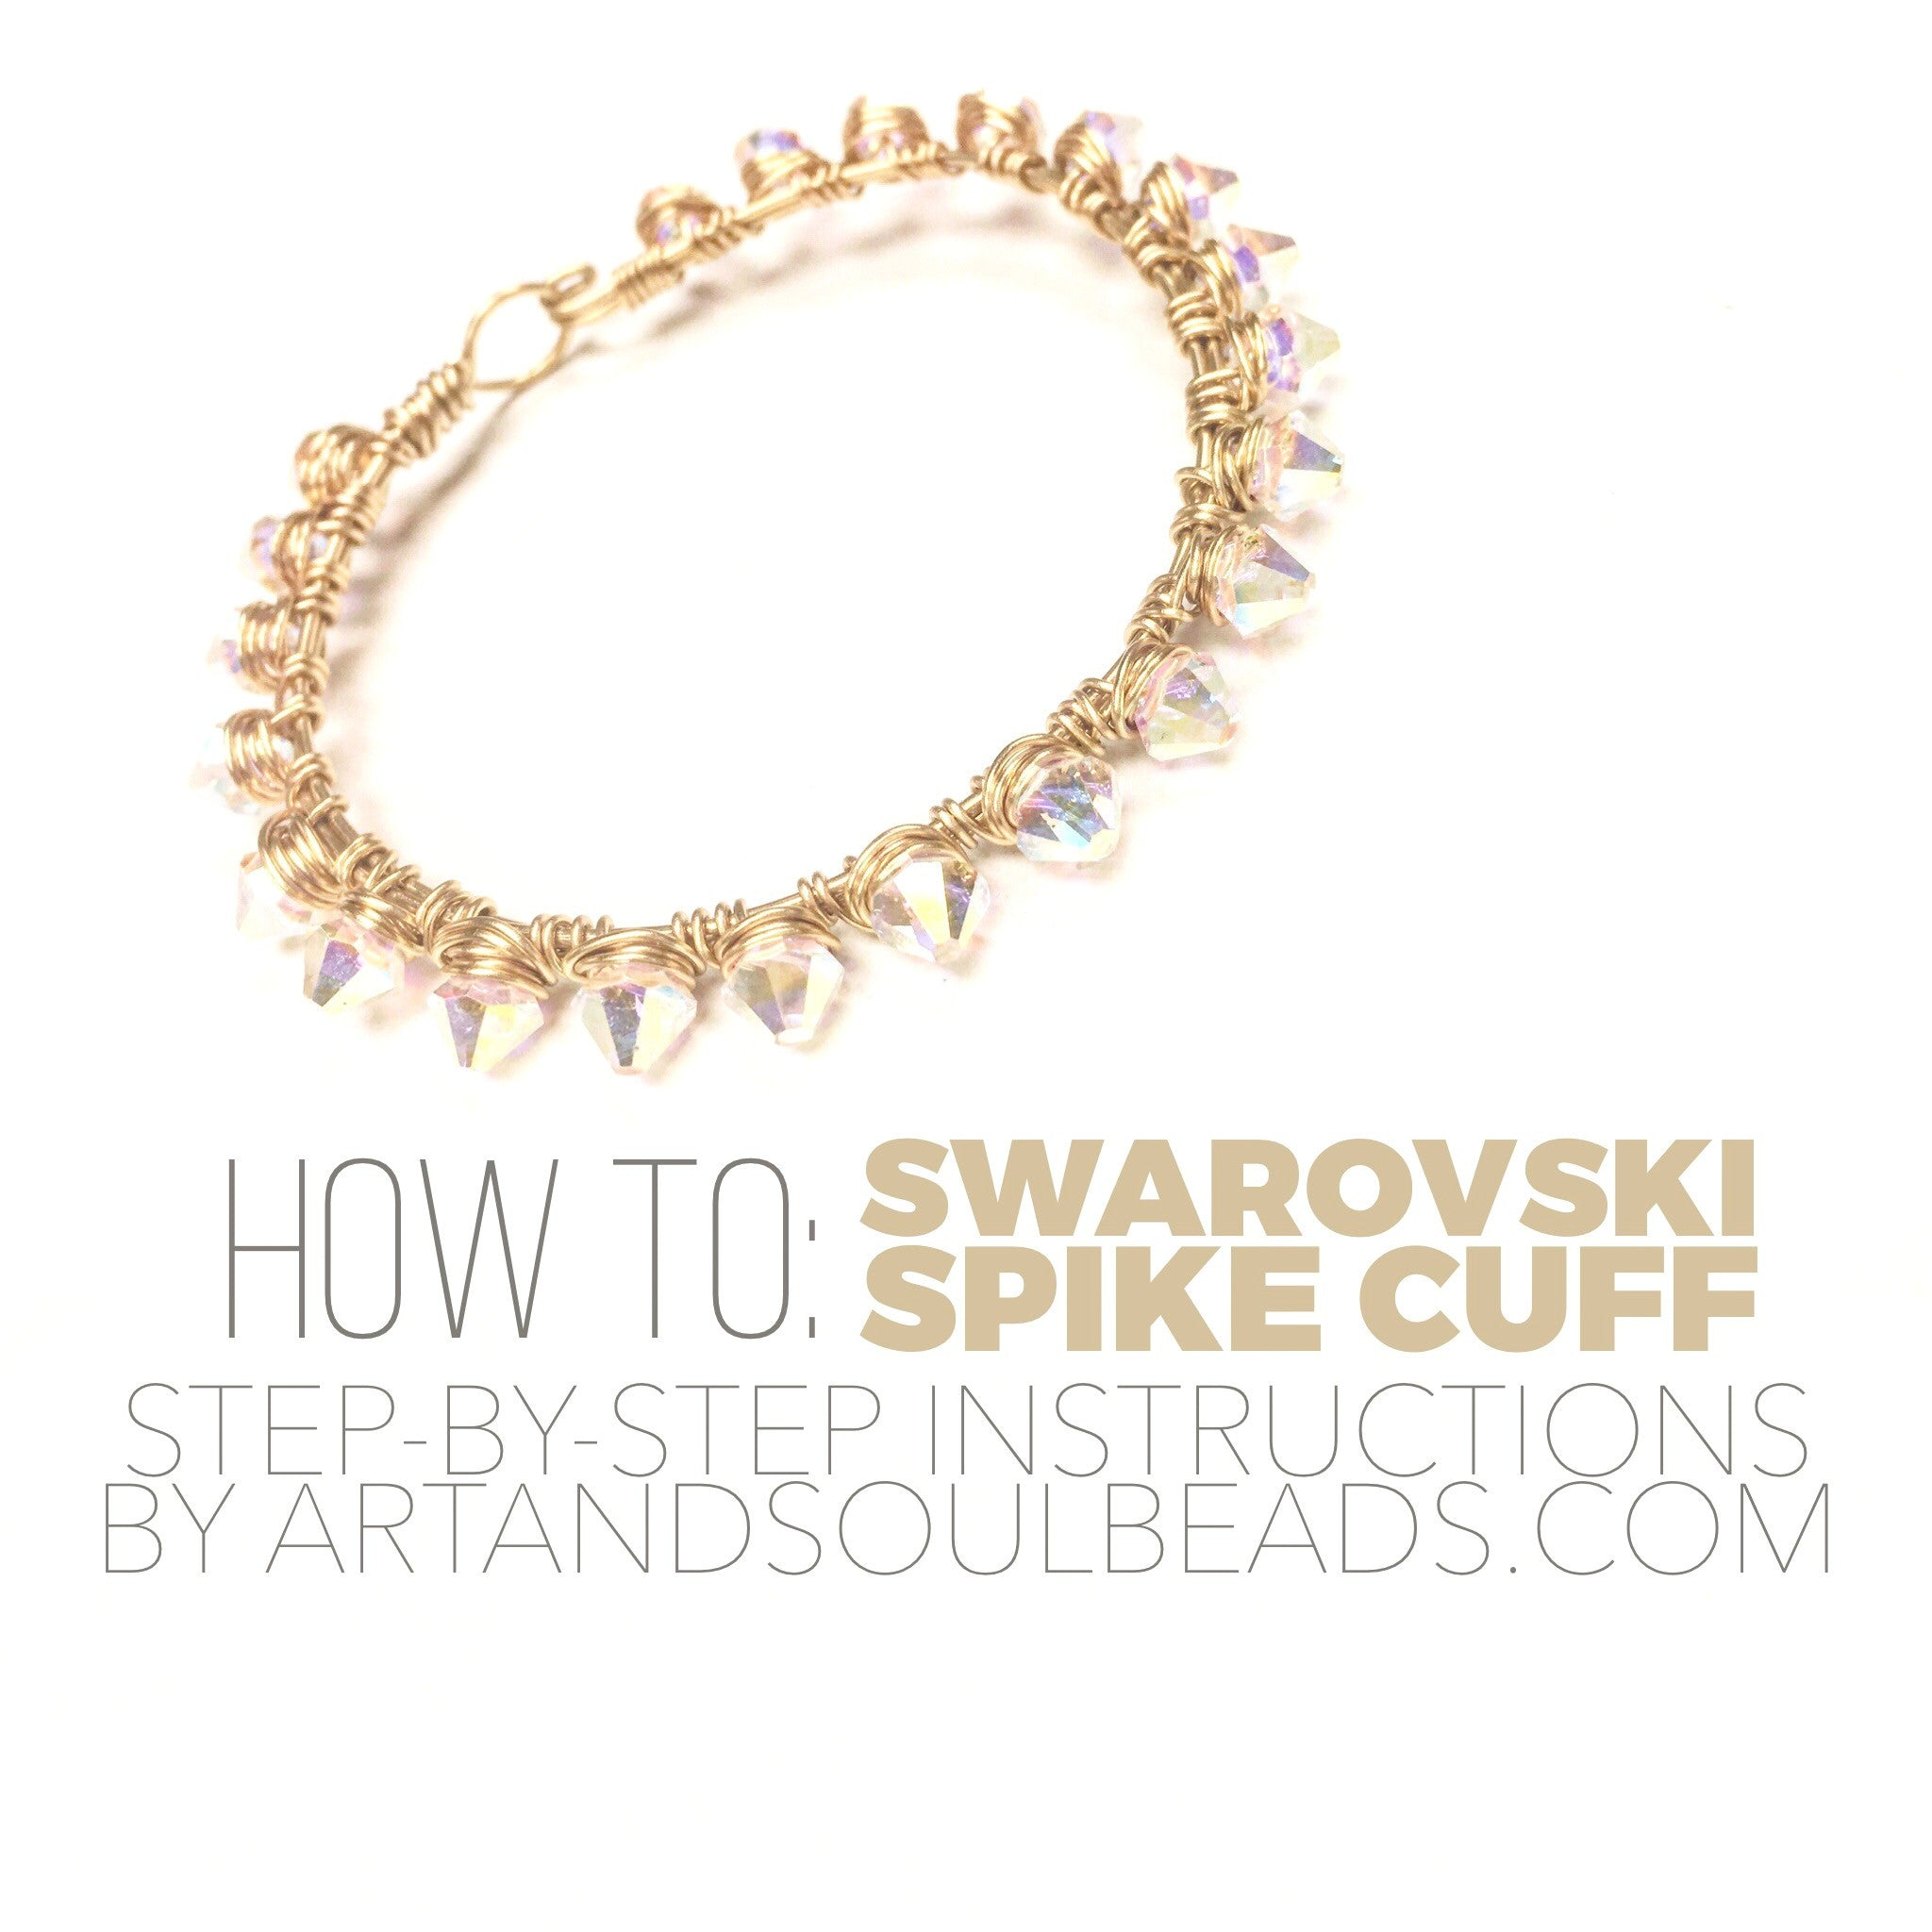 /blogs/art-amp-soul/how-to-swarovski-spike-crystal-cuff